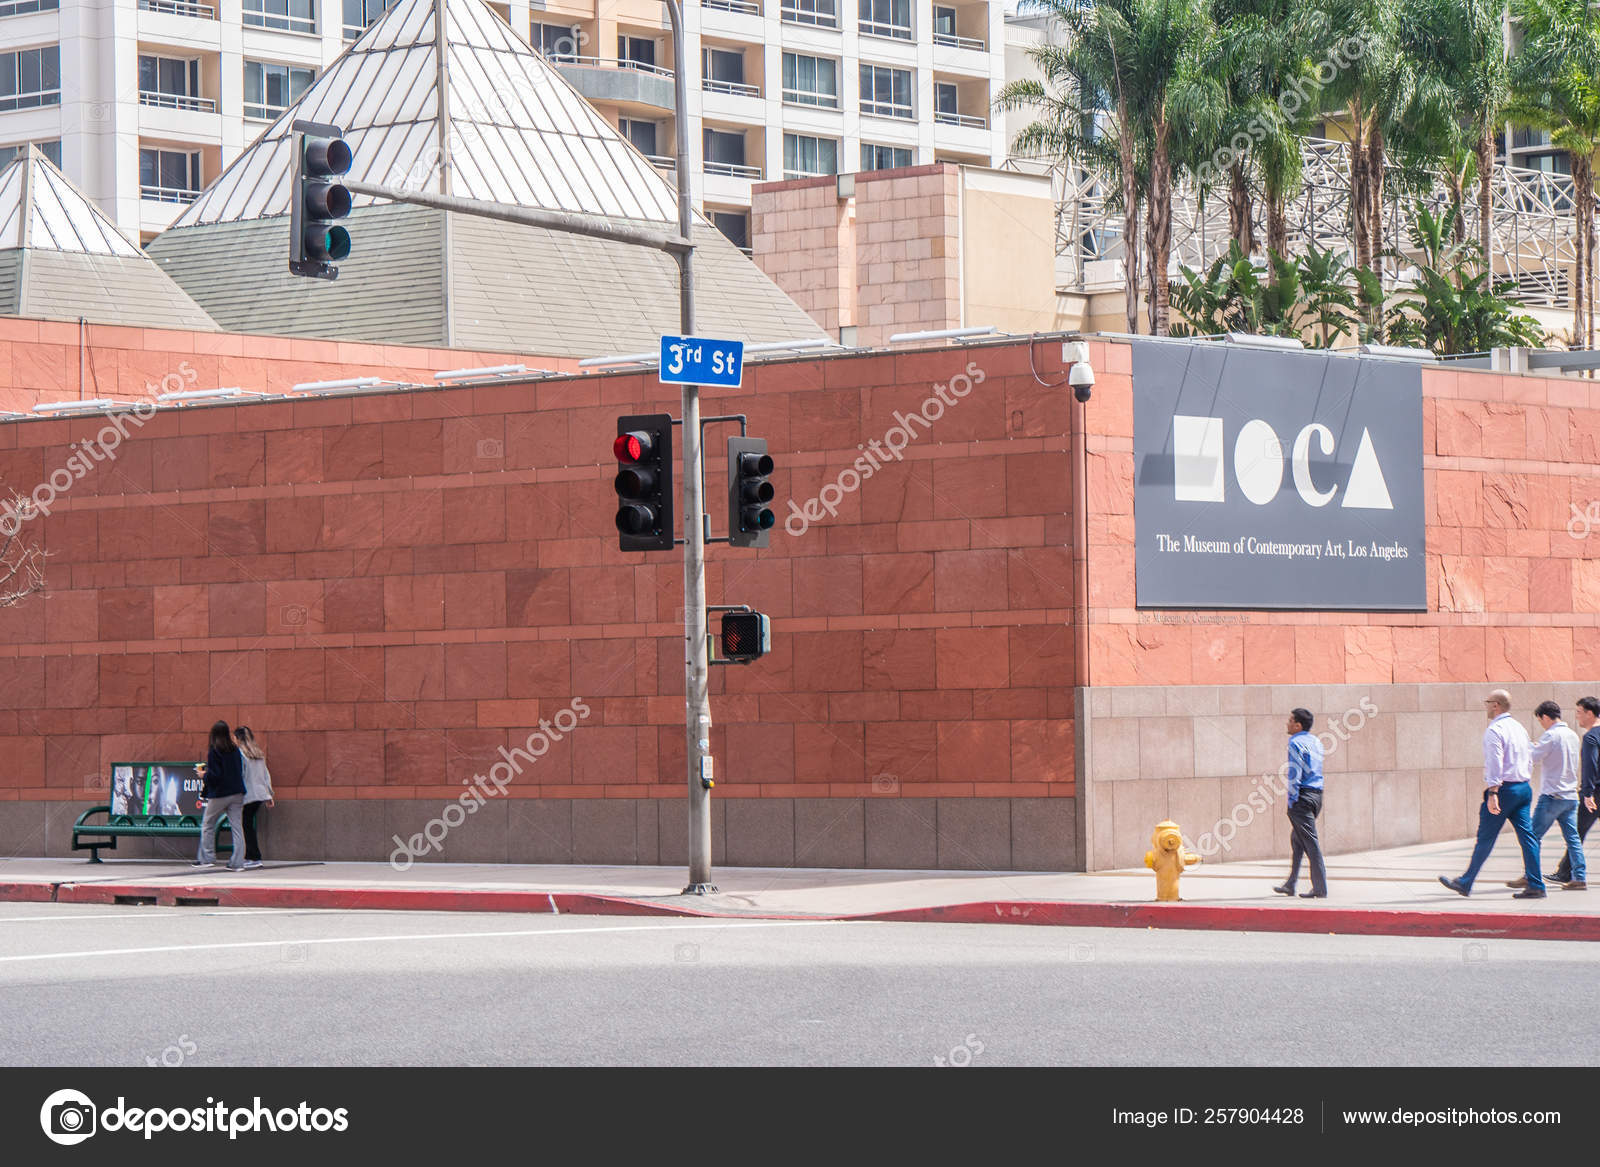 images?q=tbn:ANd9GcQh_l3eQ5xwiPy07kGEXjmjgmBKBRB7H2mRxCGhv1tFWg5c_mWT Trends For Contemporary Art Los Angeles Museum @koolgadgetz.com.info